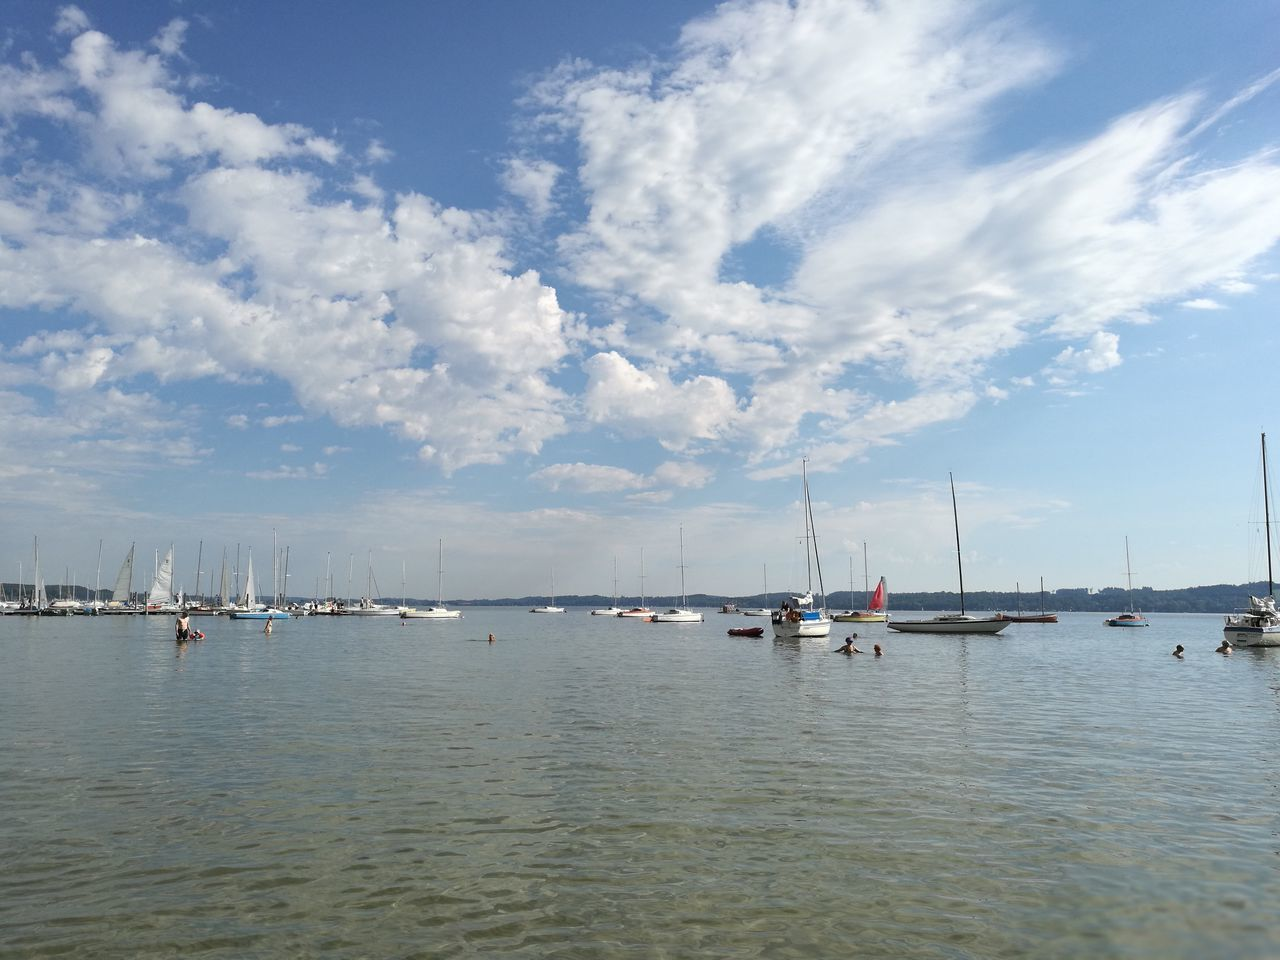 Taking Photos Nautical Vessel Water Transportation Sky Cloud Boat Cloudscape Calm Tranquil Scene Nature Summer ☀ HuaweiP9 Photography Deutschland Photo